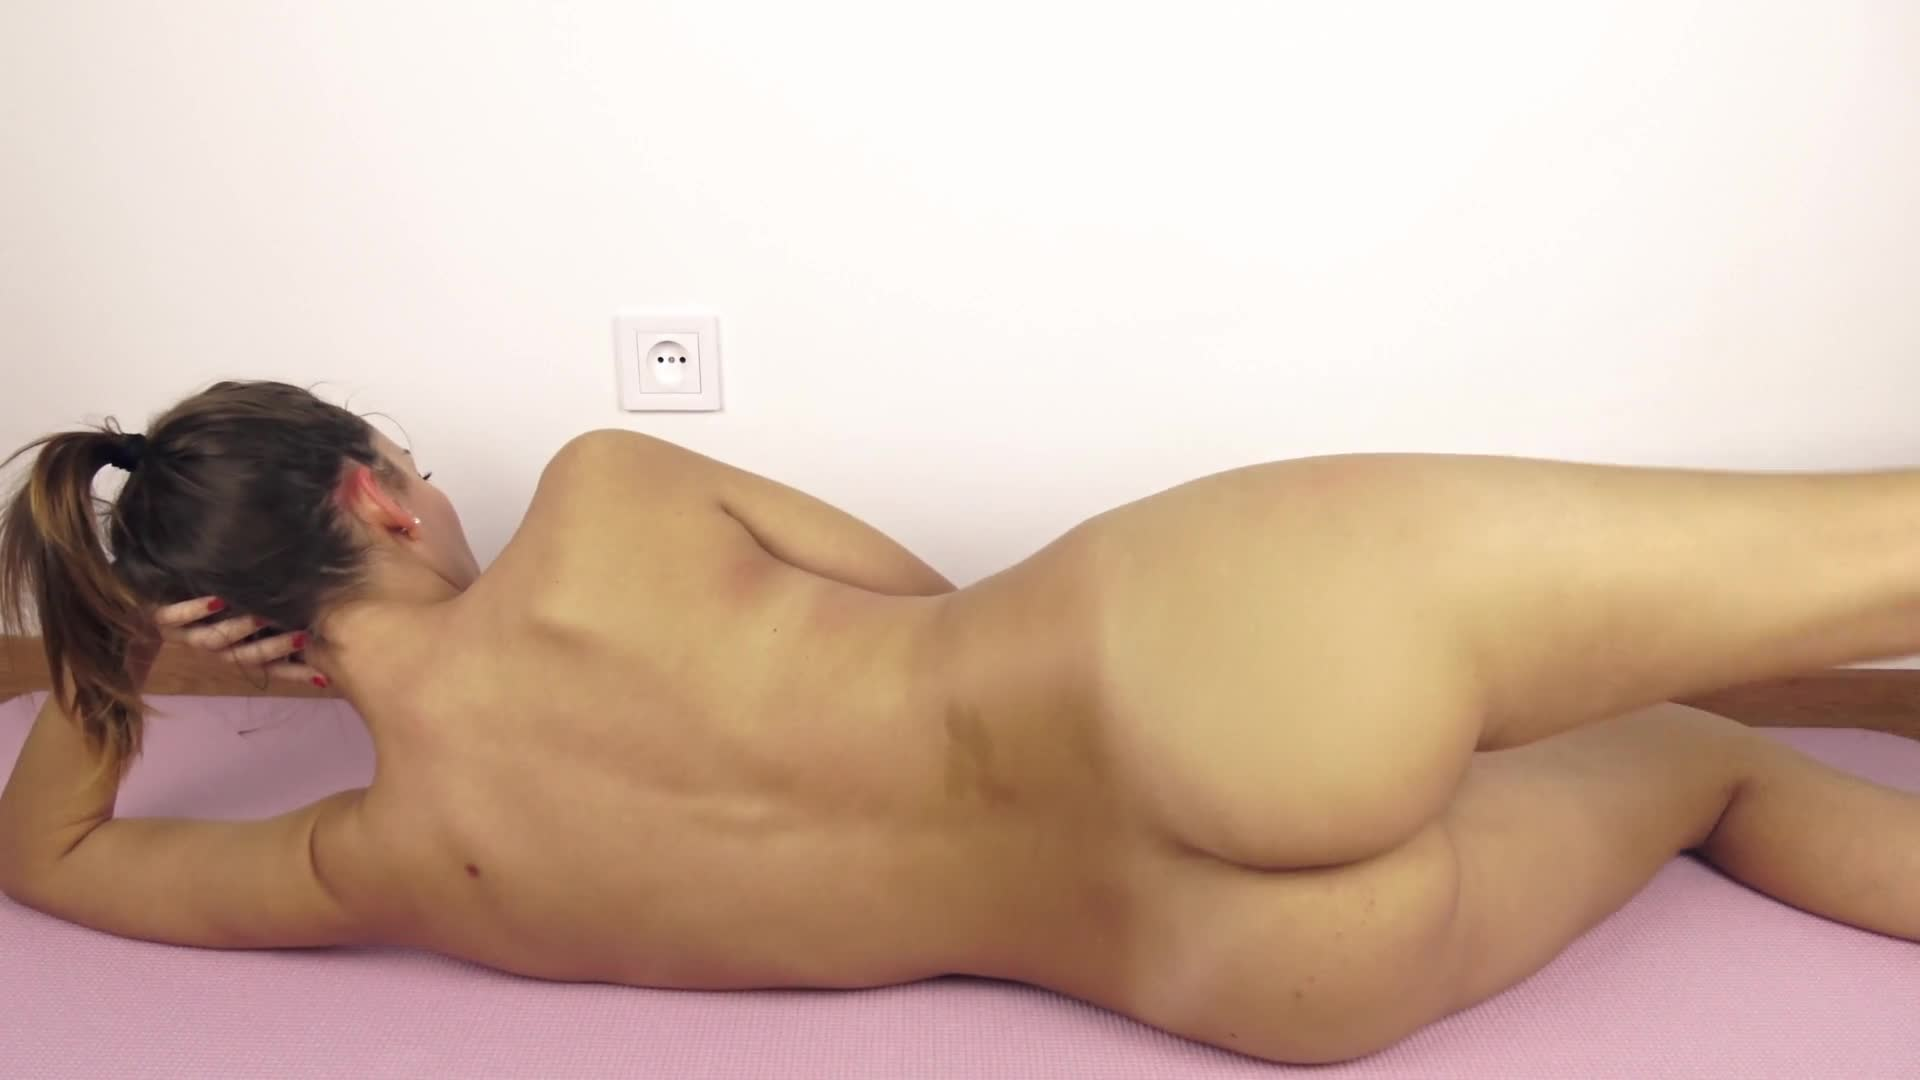 Sweet Bunny - Beautiful College Girl Does Her Workout Routine Naked An ... - k2s.tv